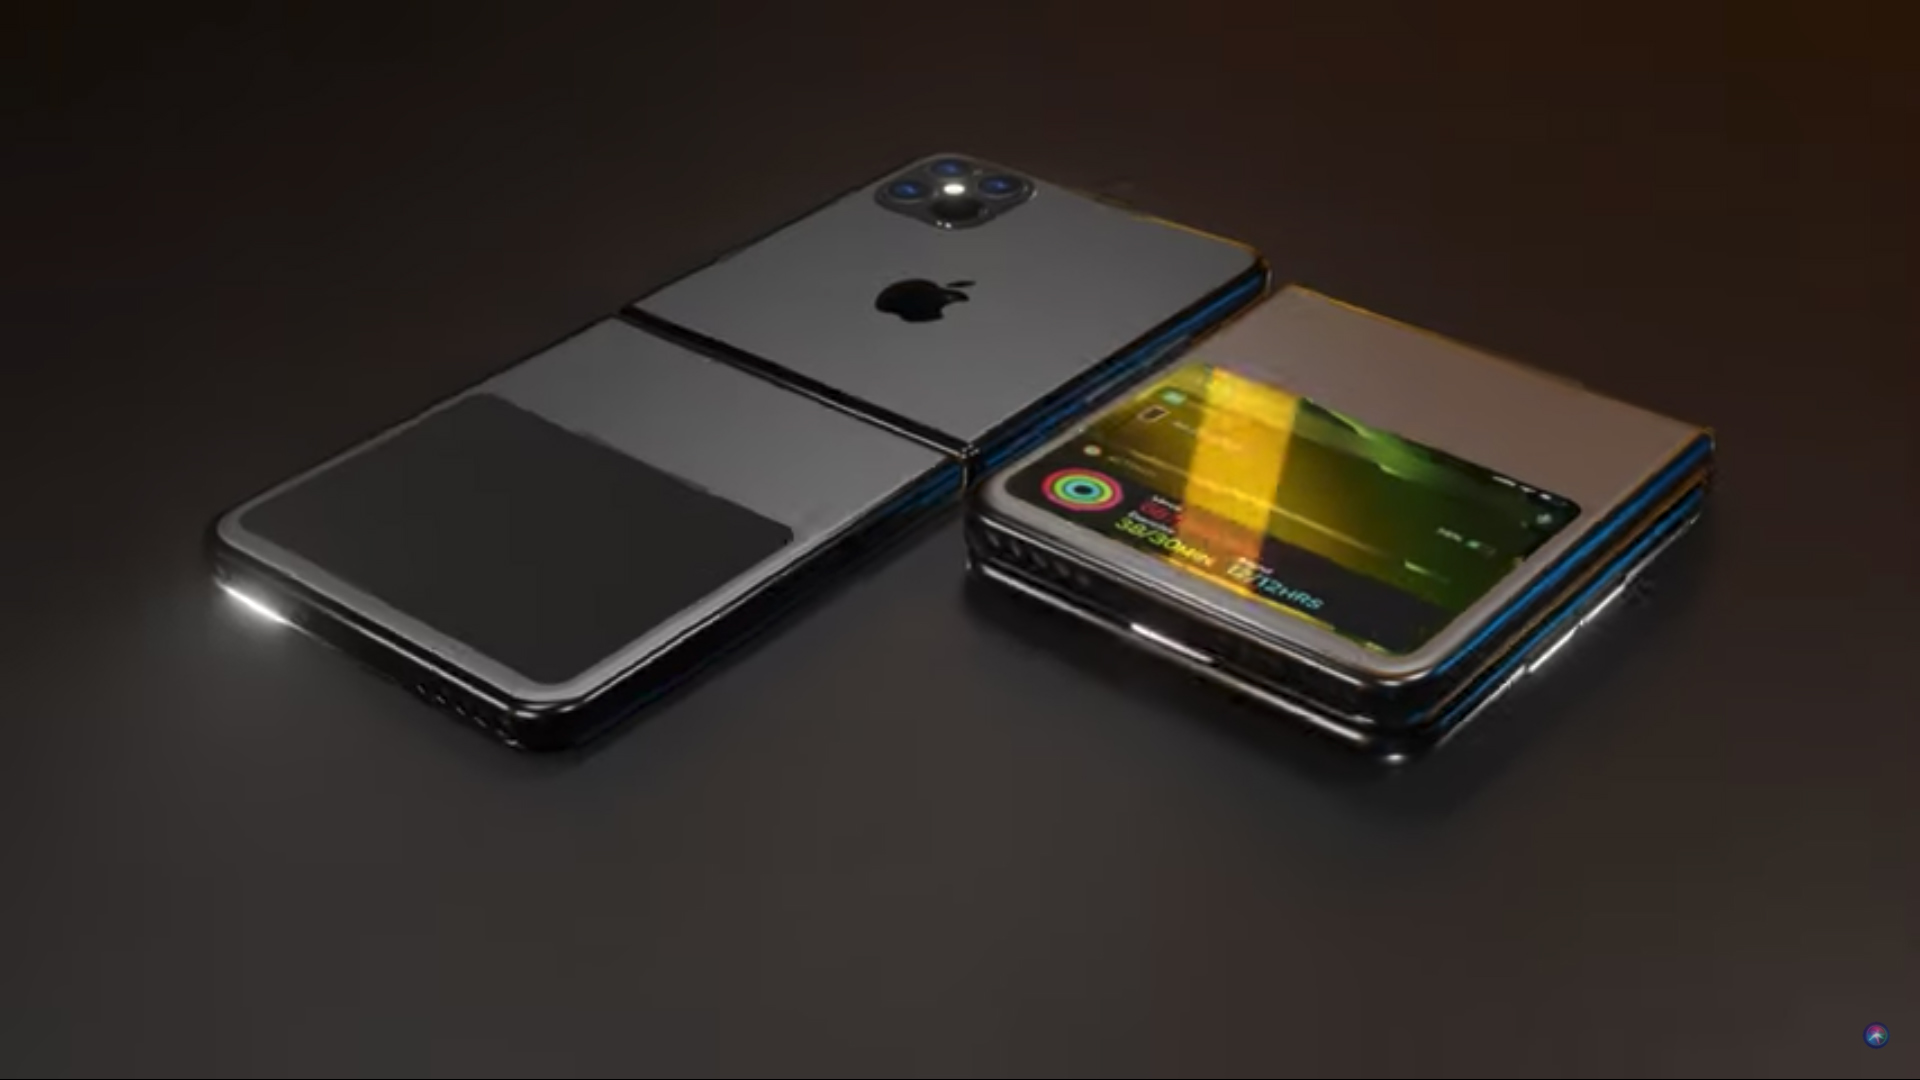 Iphone Flip Everything We Know About Apple S Foldable Phone Plans Tom S Guide